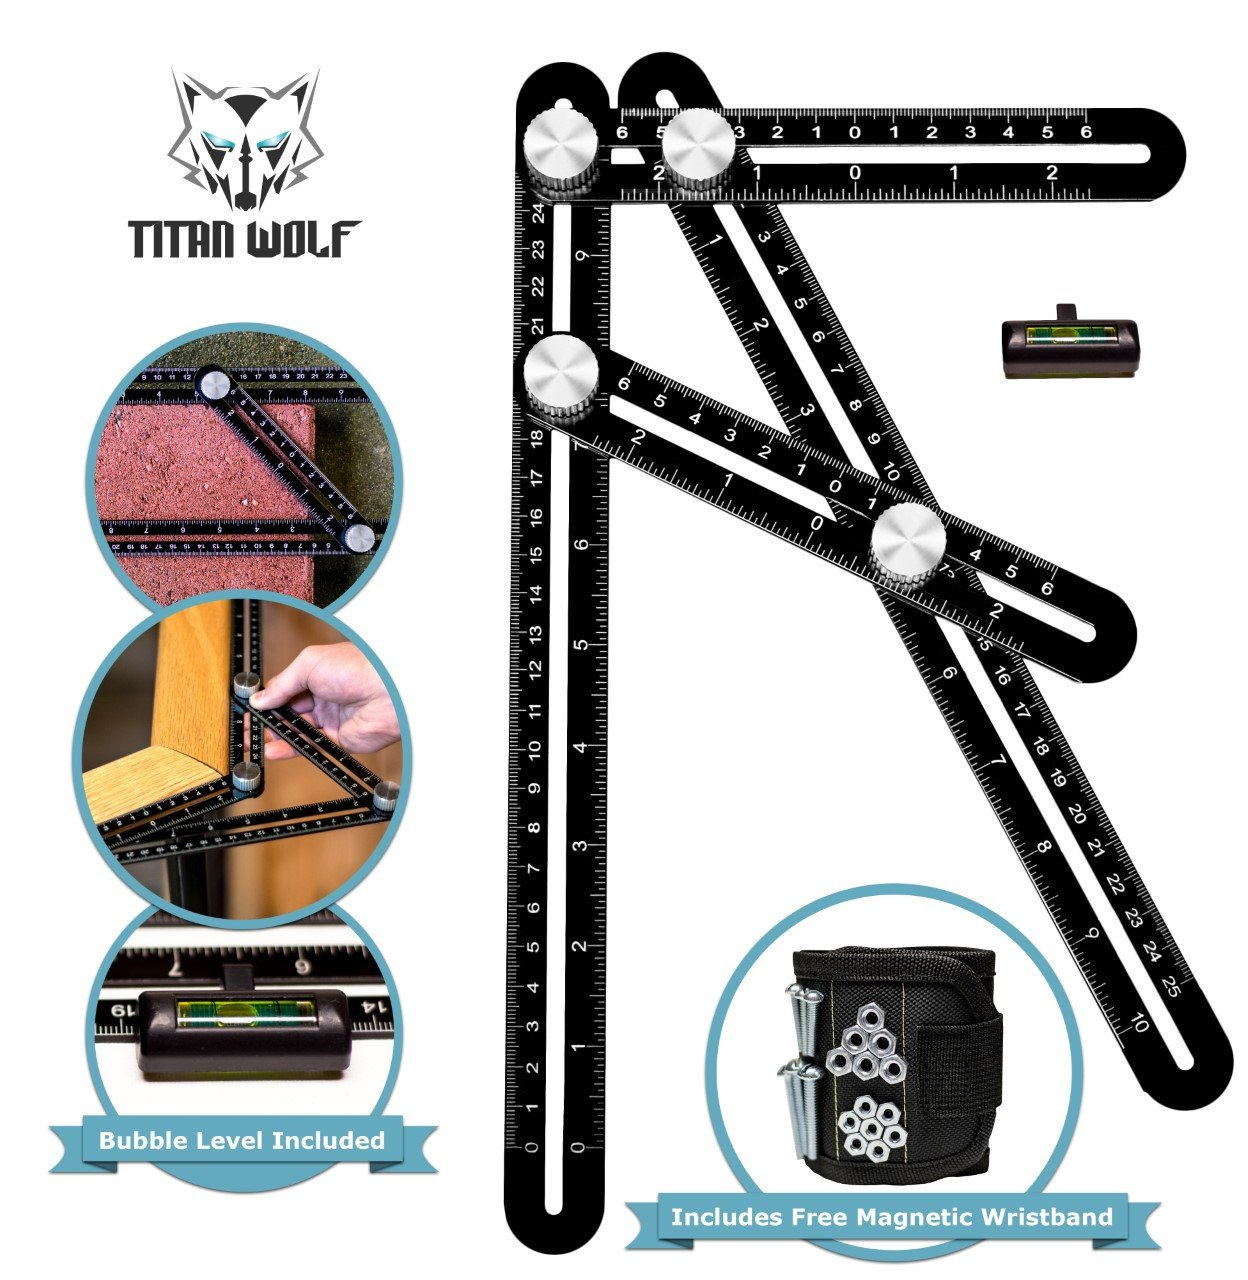 Premium Aluminum Laser Engraved Multi Angle Measuring Ruler Template Tool With Bubble Level And Bonus Magnetic Wristband Perfect For Any Project   Carpenters   Architects   DIYer's   Builders